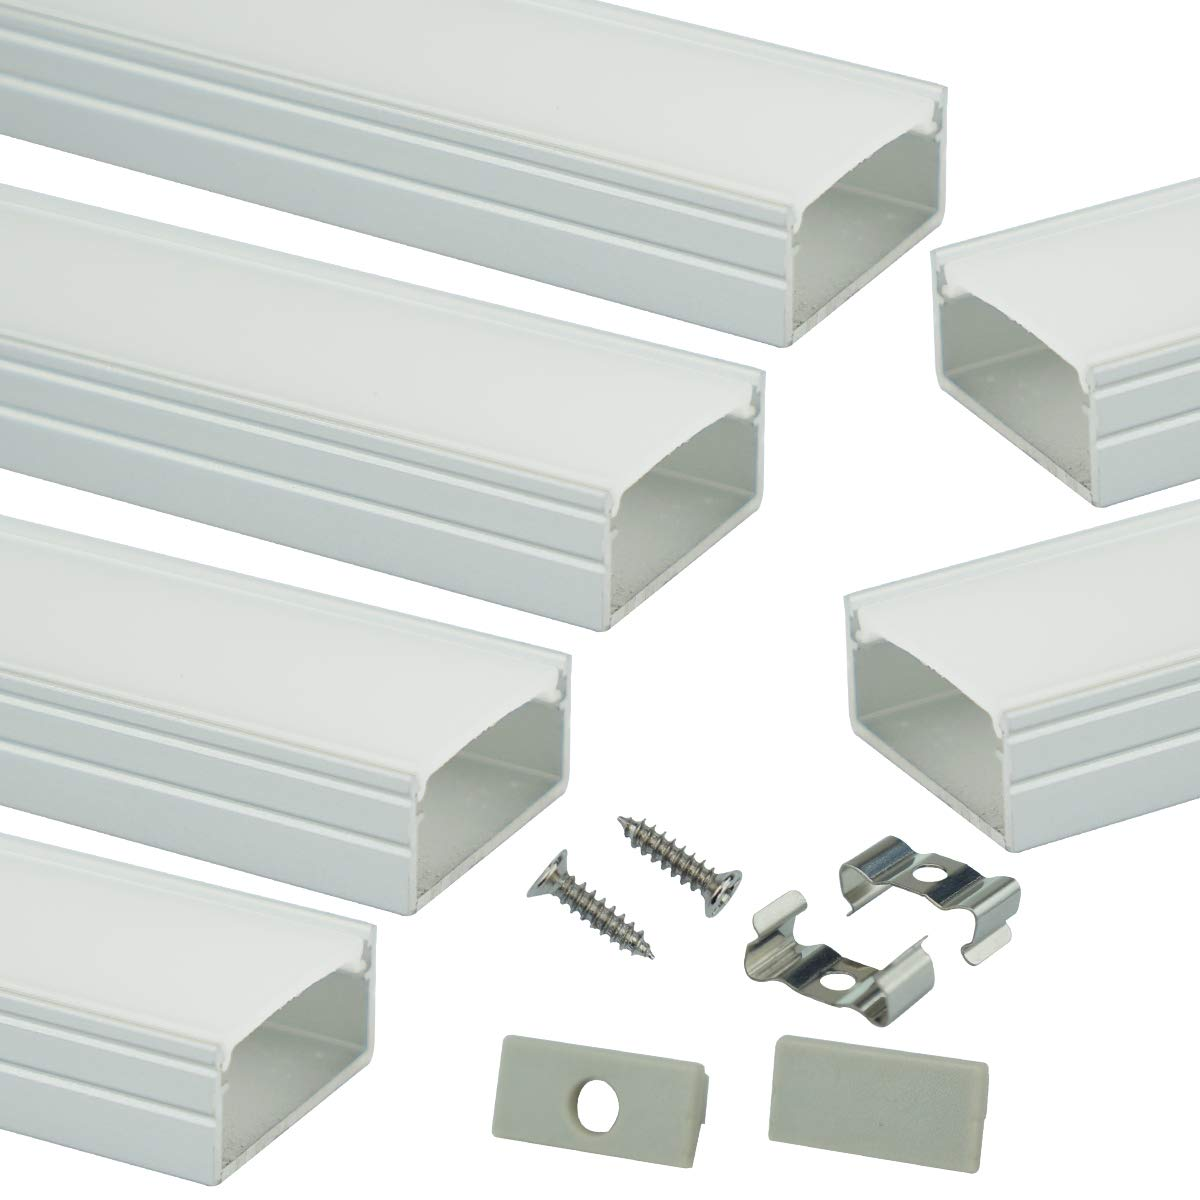 Muzata LED Channel System with Milky White Cover,16mm Super Wide Aluminum Extrusion Profile Track Diffuser for Tape Strip Light Philips Hue Plus with Video,U Shape,6Pack 3.3Ft U102,Series LU2 LP1